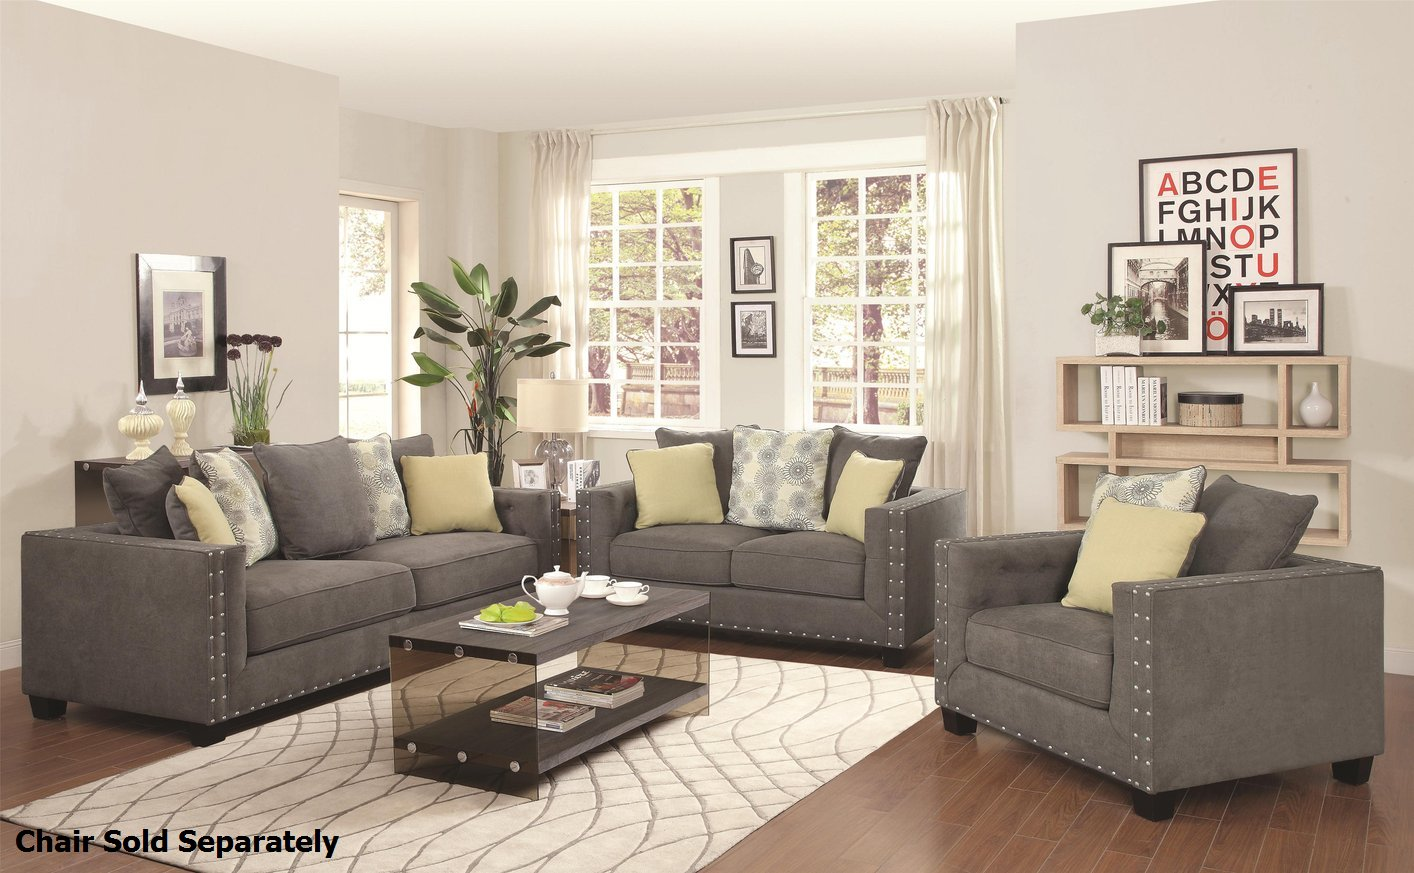 Kelvington Grey Fabric Reclining Sofa and Loveseat Set. Kelvington Grey Fabric Reclining Sofa and Loveseat Set   Steal A